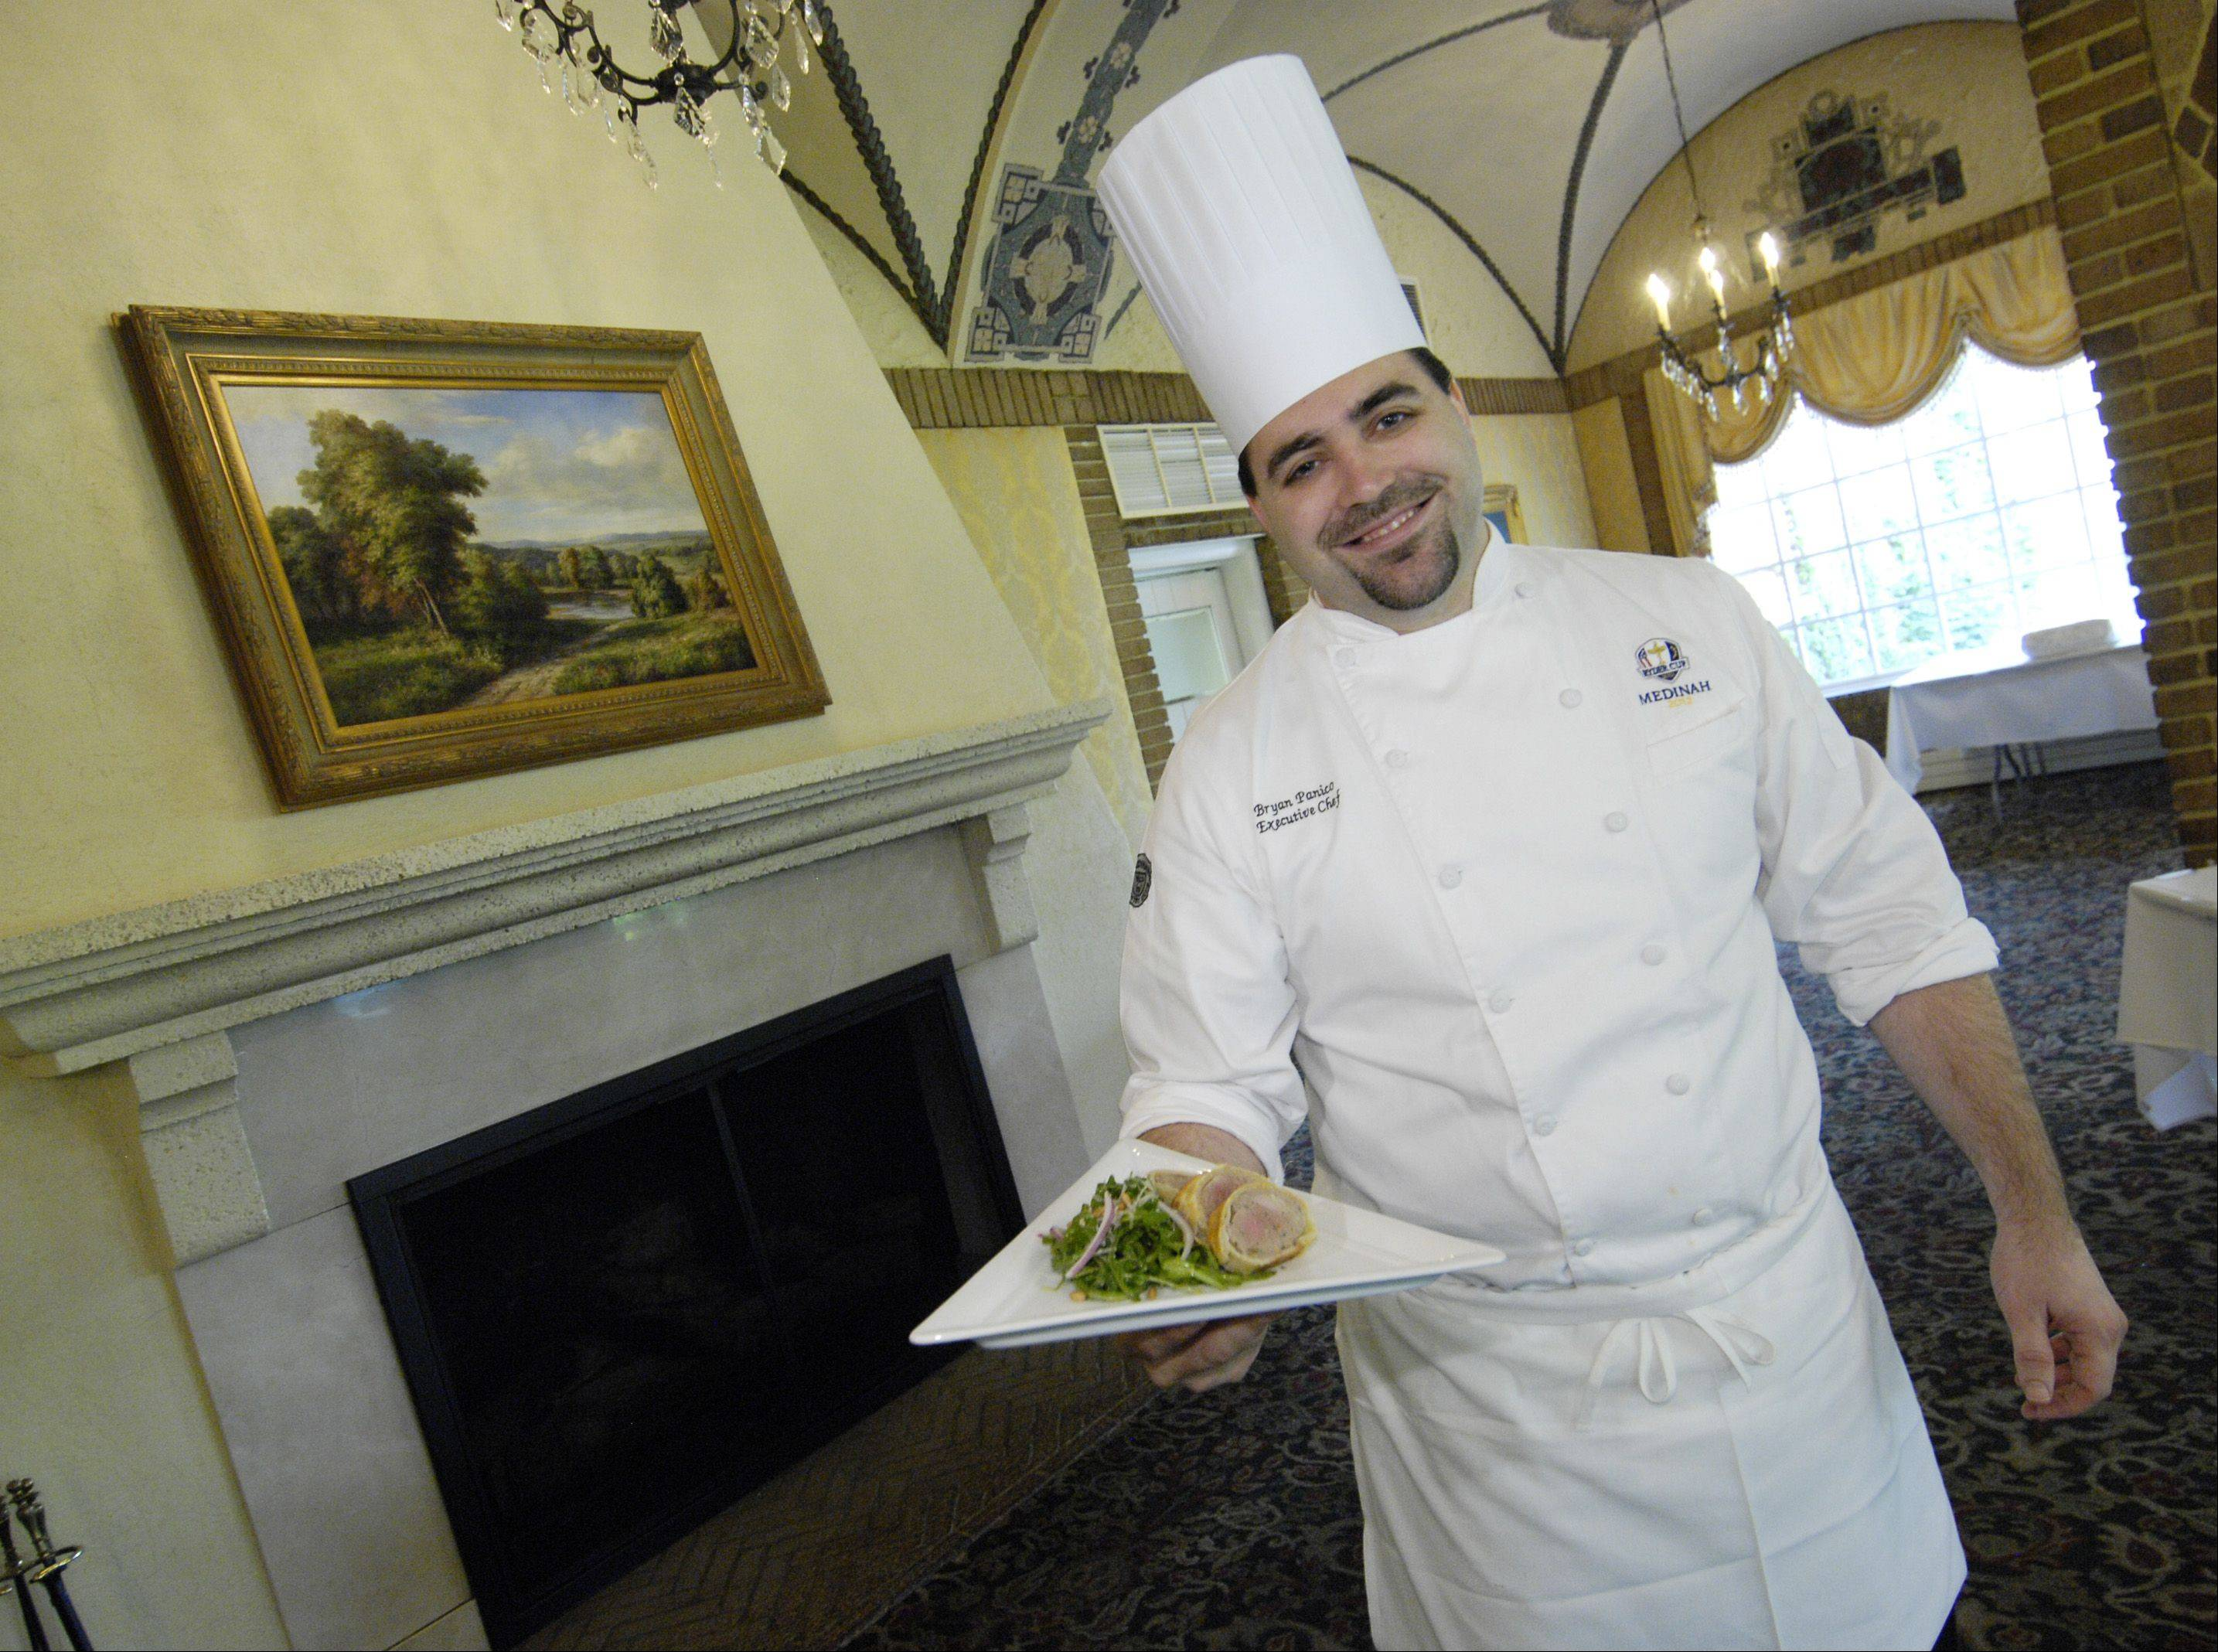 Medinah chef eager to feed golf's elite during Ryder Cup week